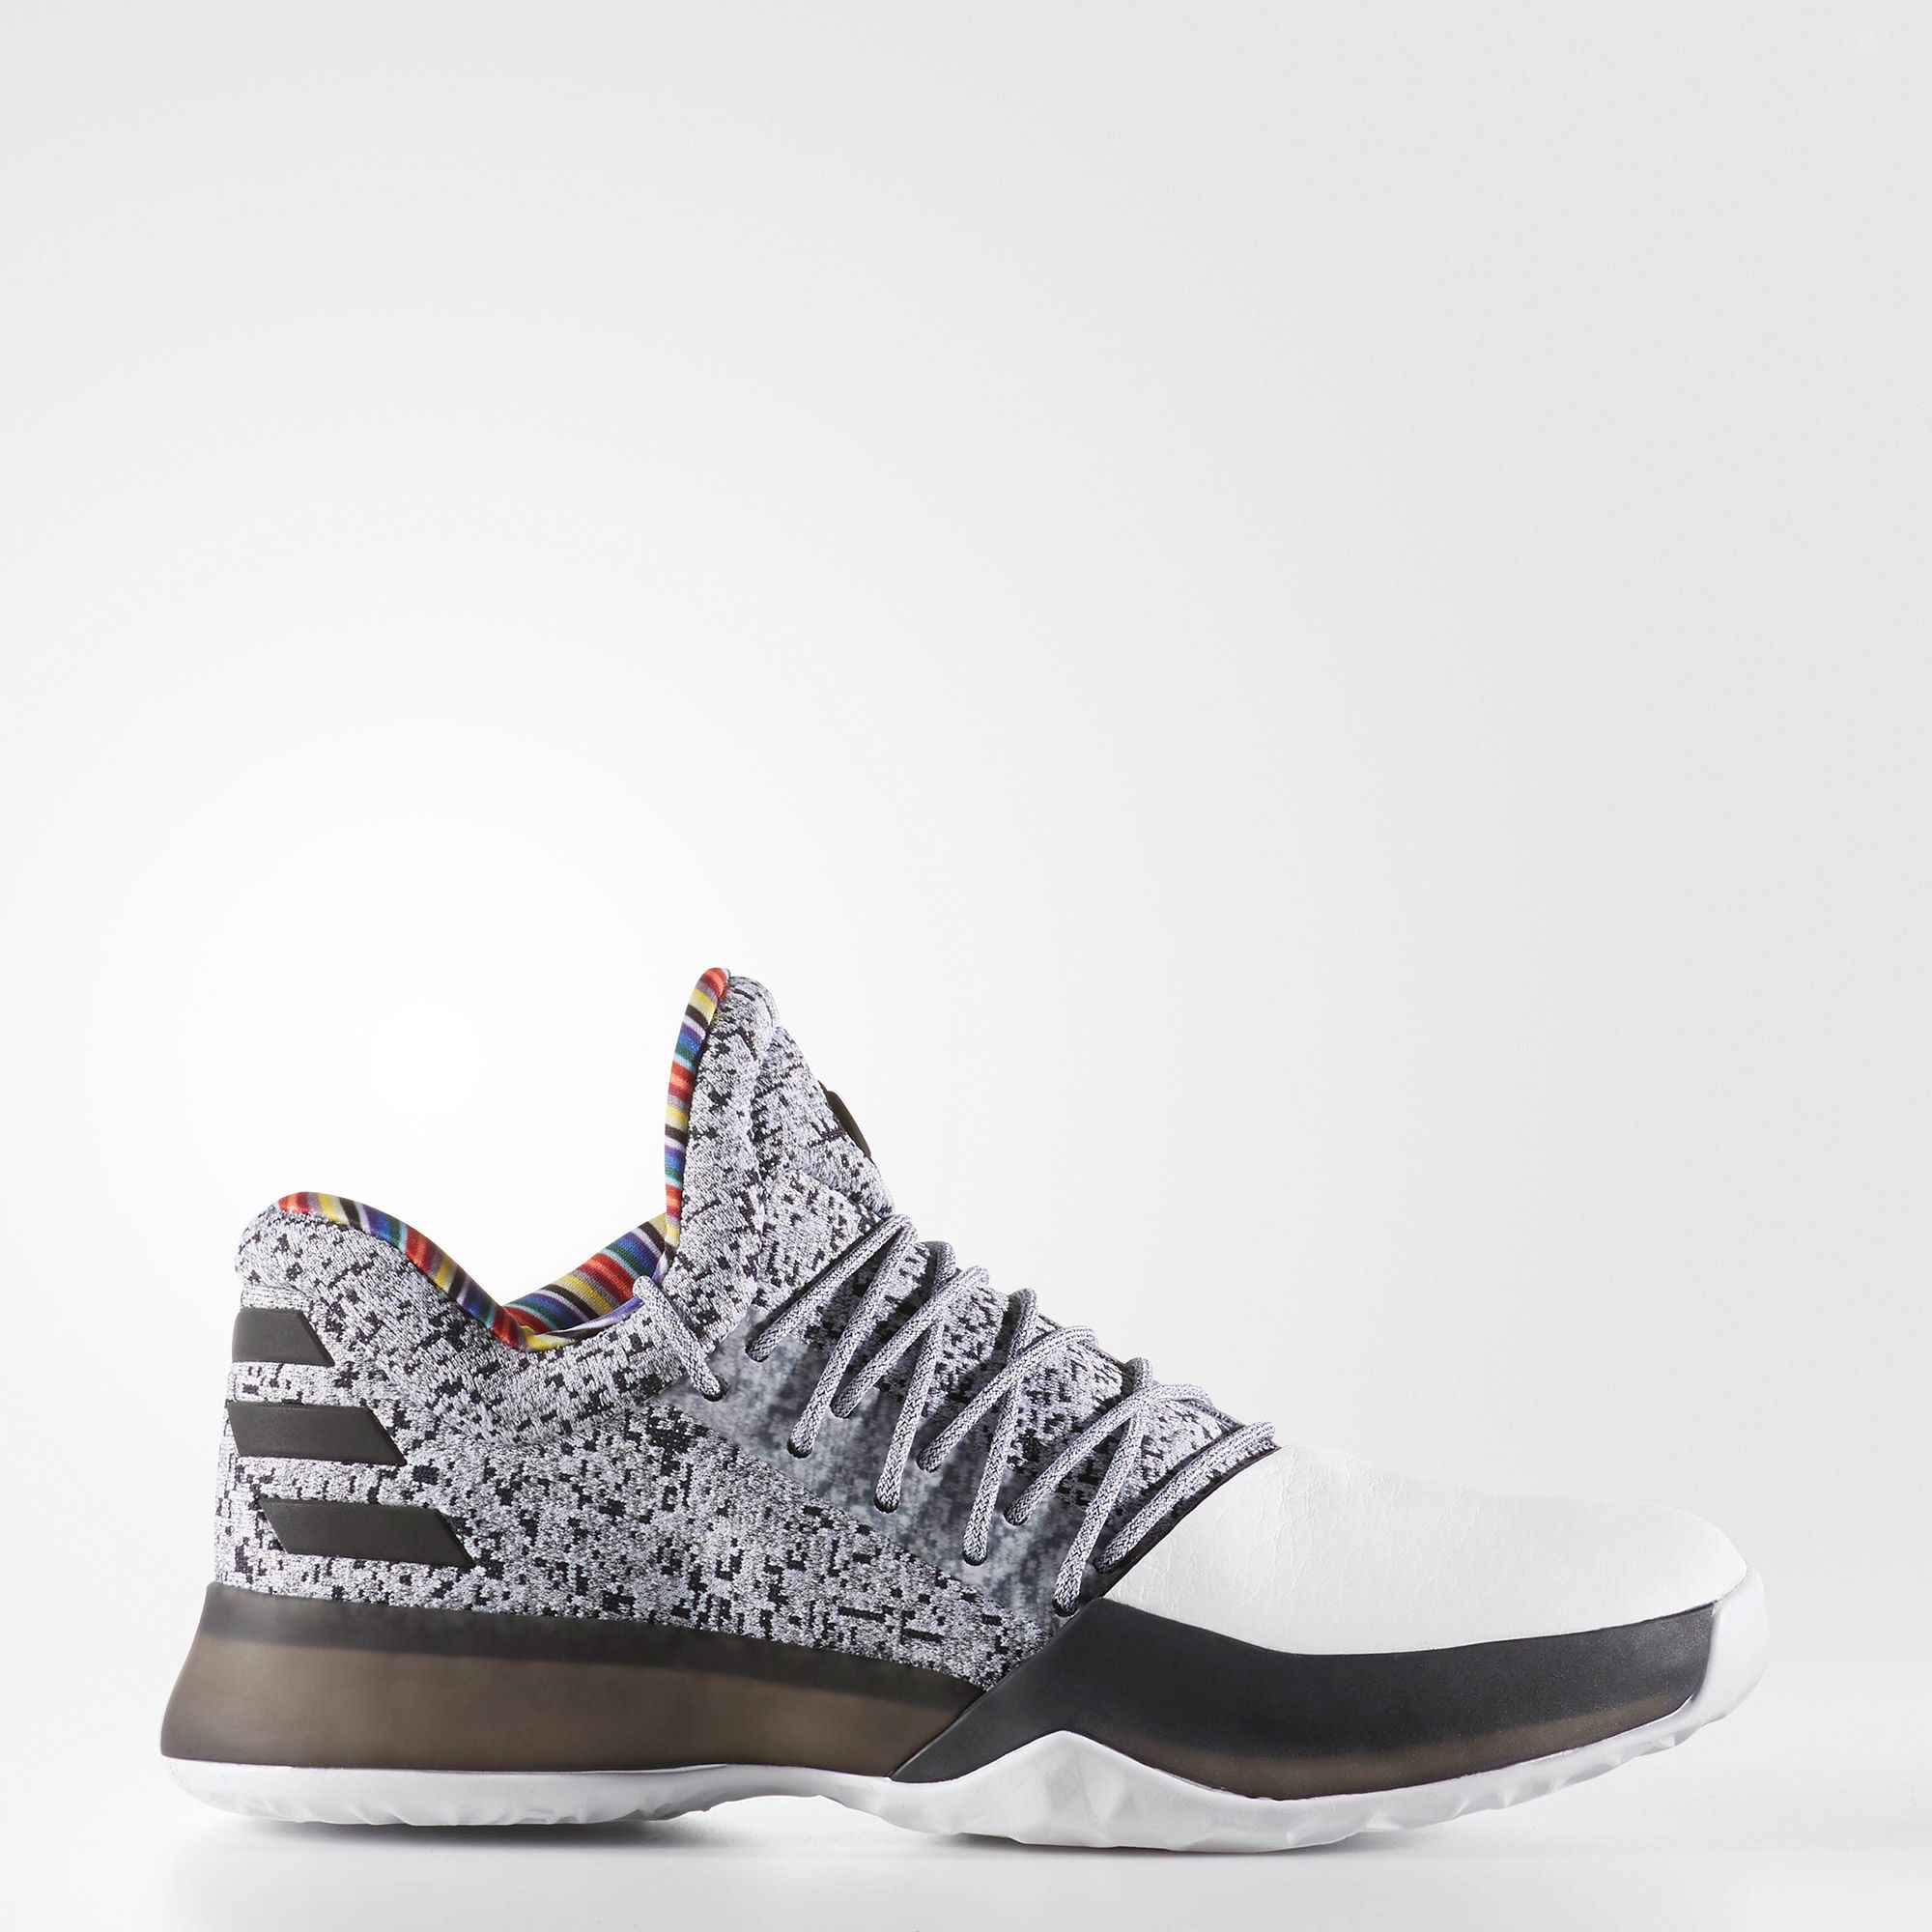 d668951b5189e7 adidas - Harden Vol. 1 Shoes